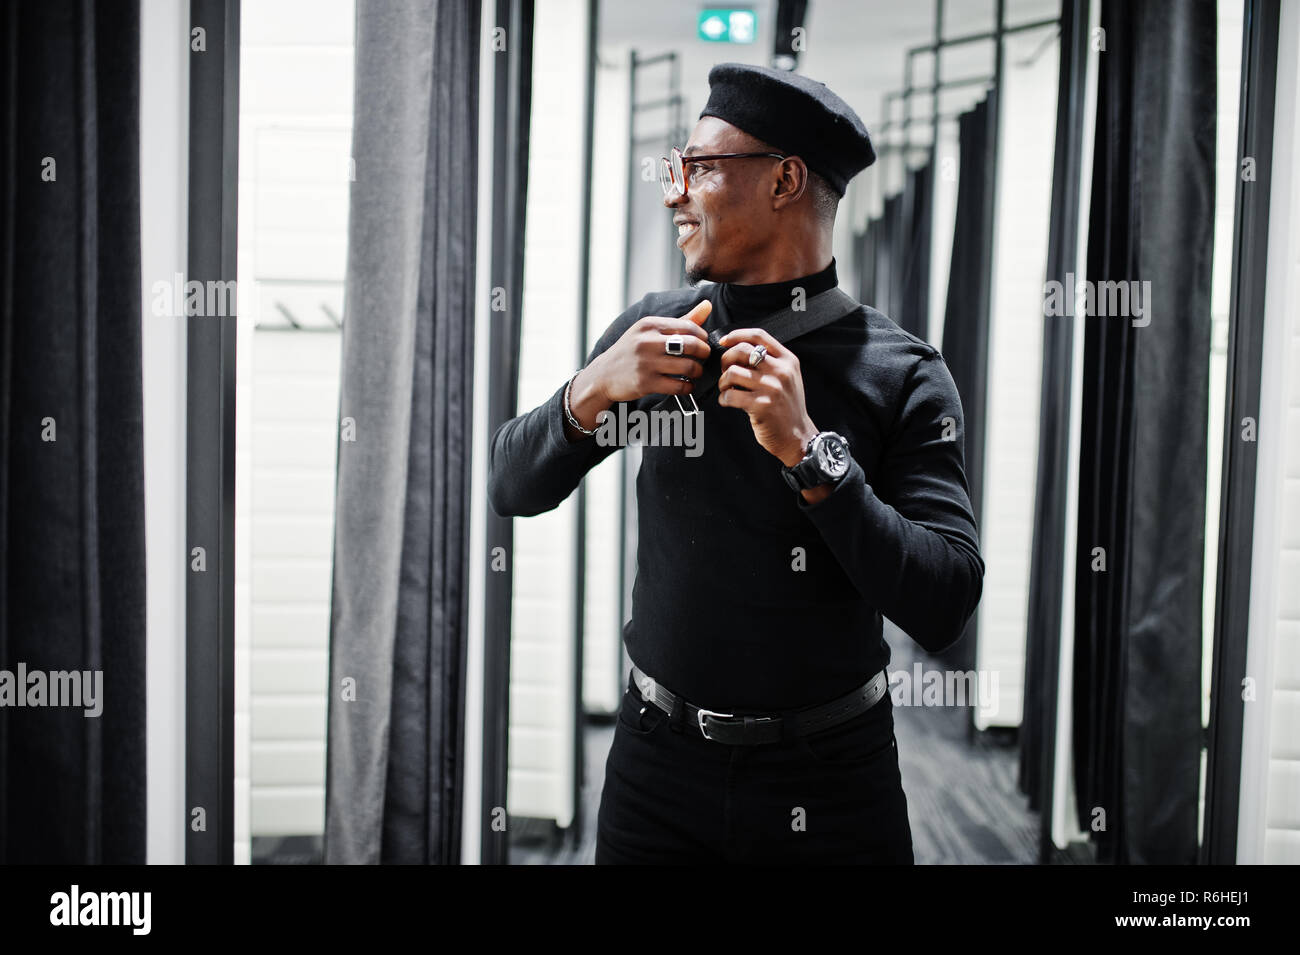 e33b999daaf6a Stylish casual african american man at black outfit and beret with waist  bag at fitting room clothes store